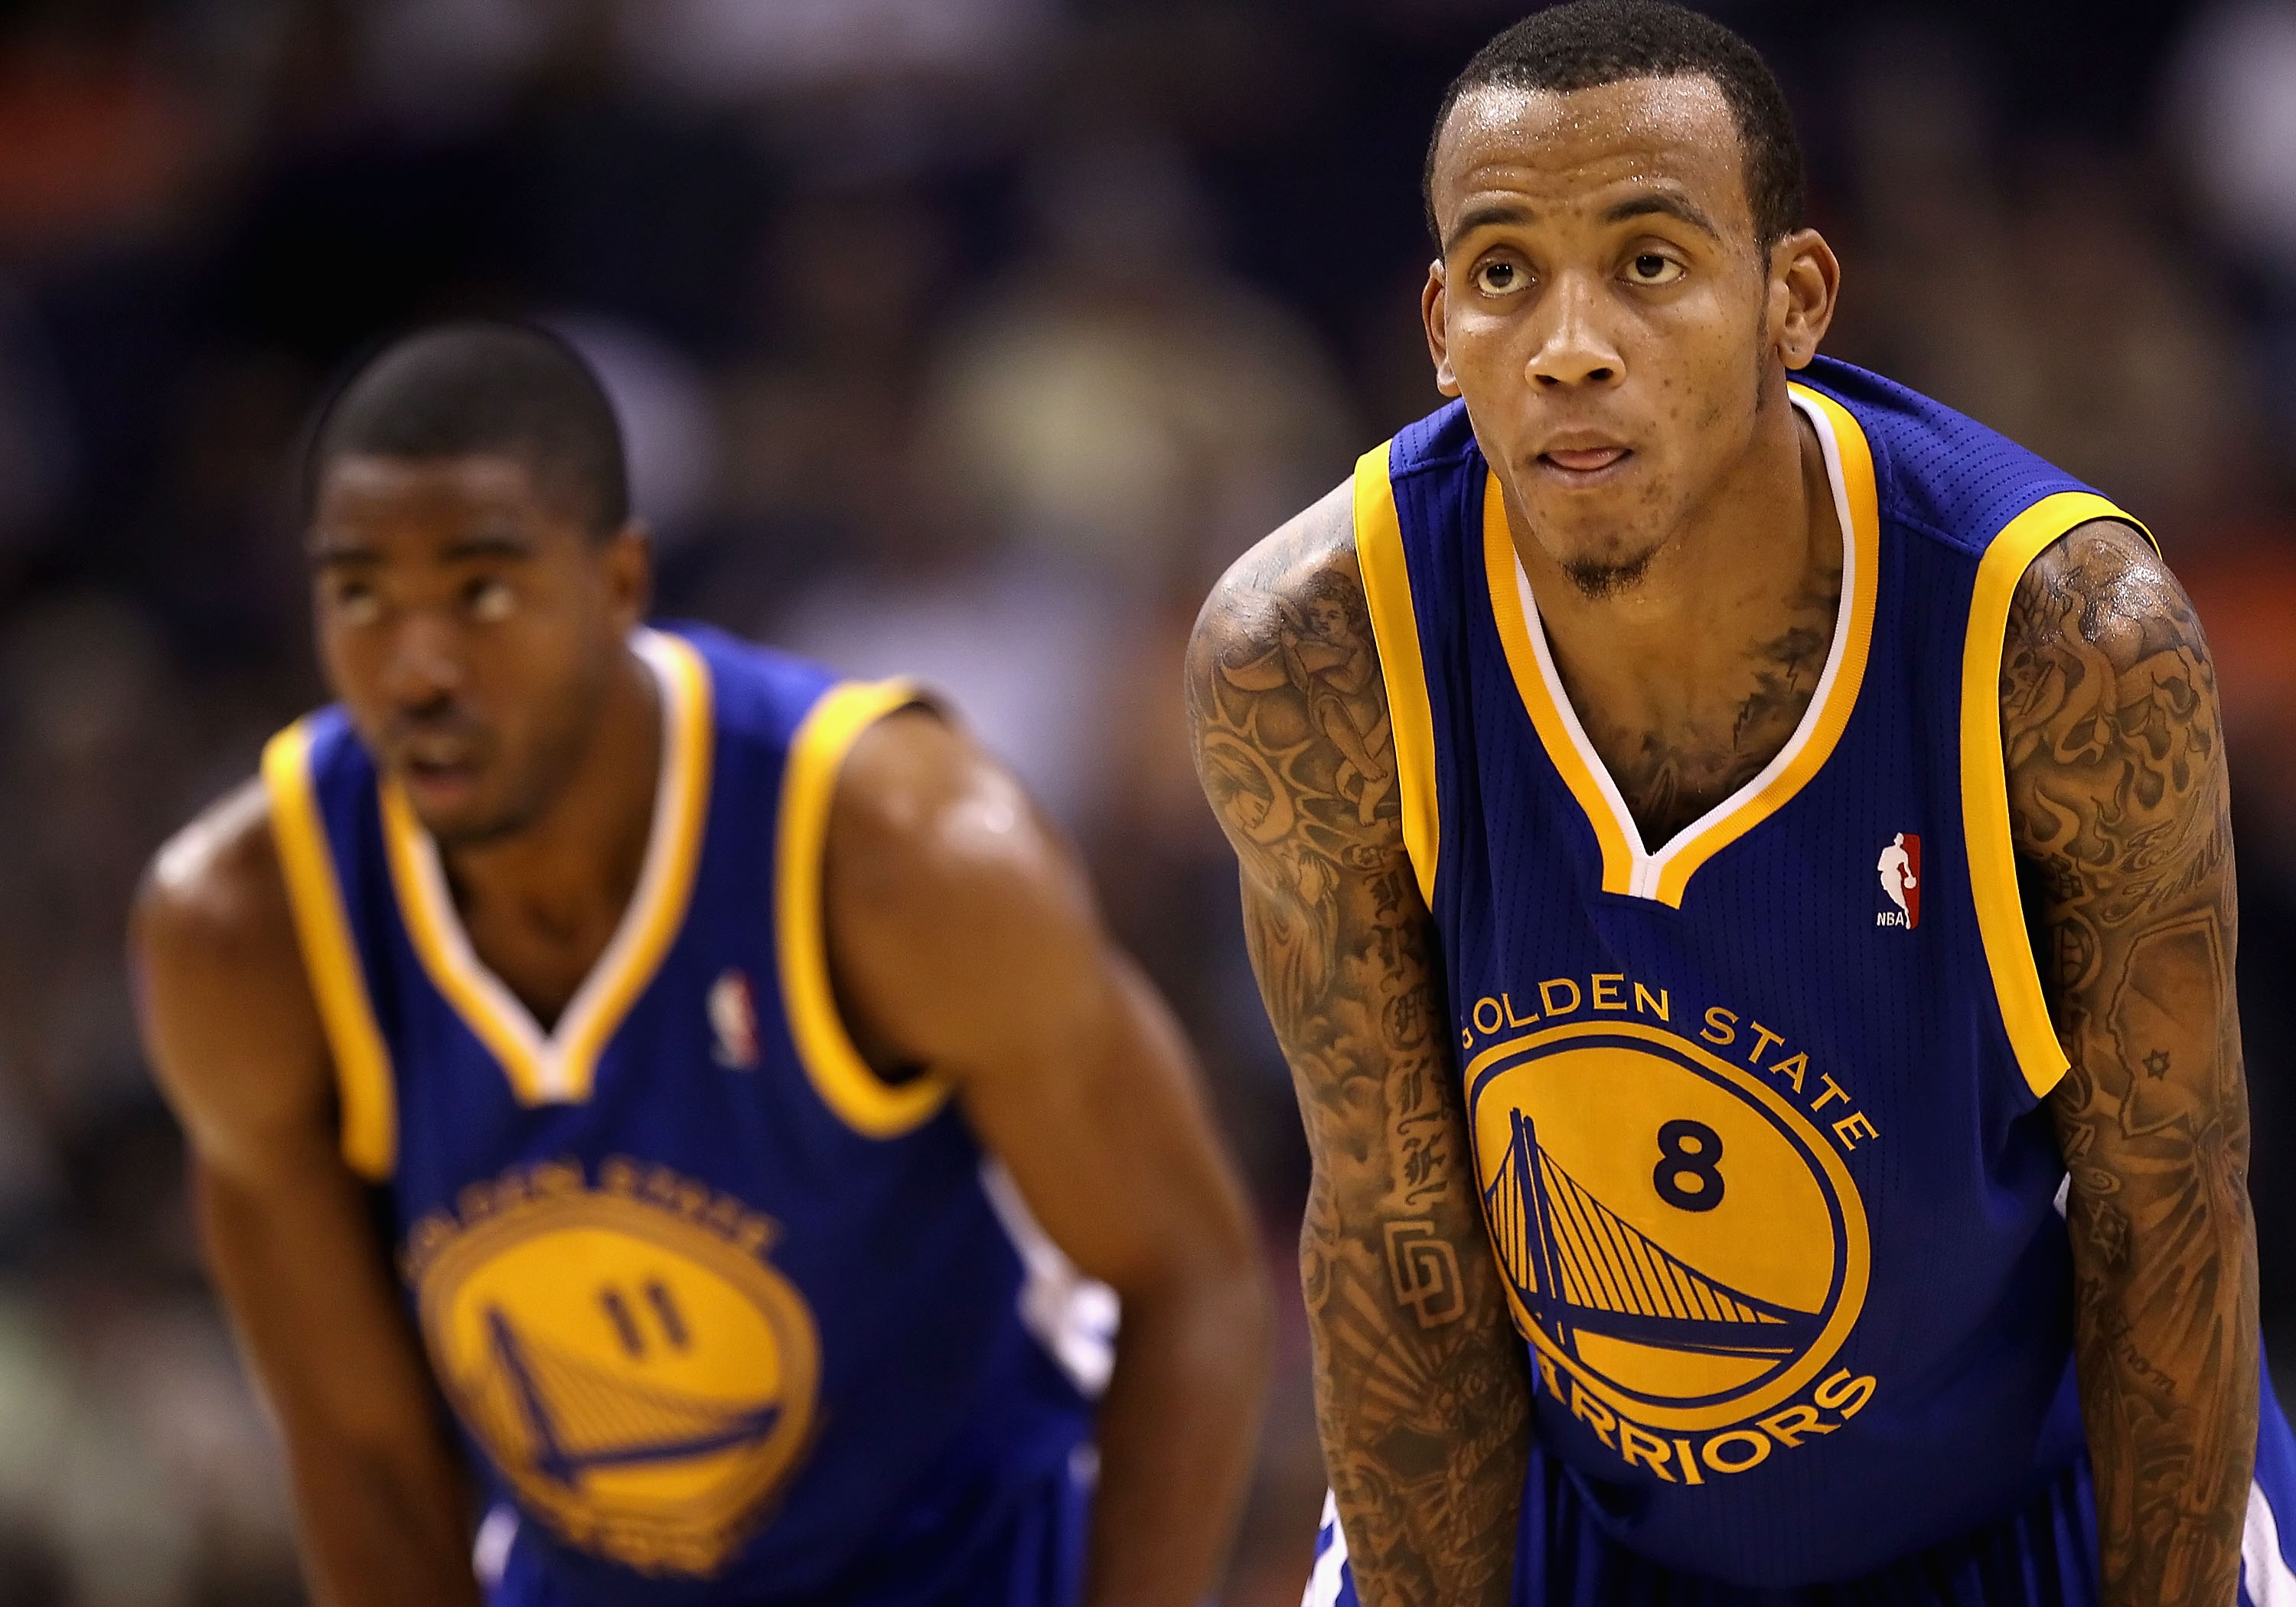 PHOENIX - OCTOBER 19:  Monta Ellis #8 (R) and Aaron Miles #11 of the Golden State Warriors await a free throw shot against the Phoenix Suns during the preseason NBA game at US Airways Center on October 19, 2010 in Phoenix, Arizona. NOTE TO USER: User expr